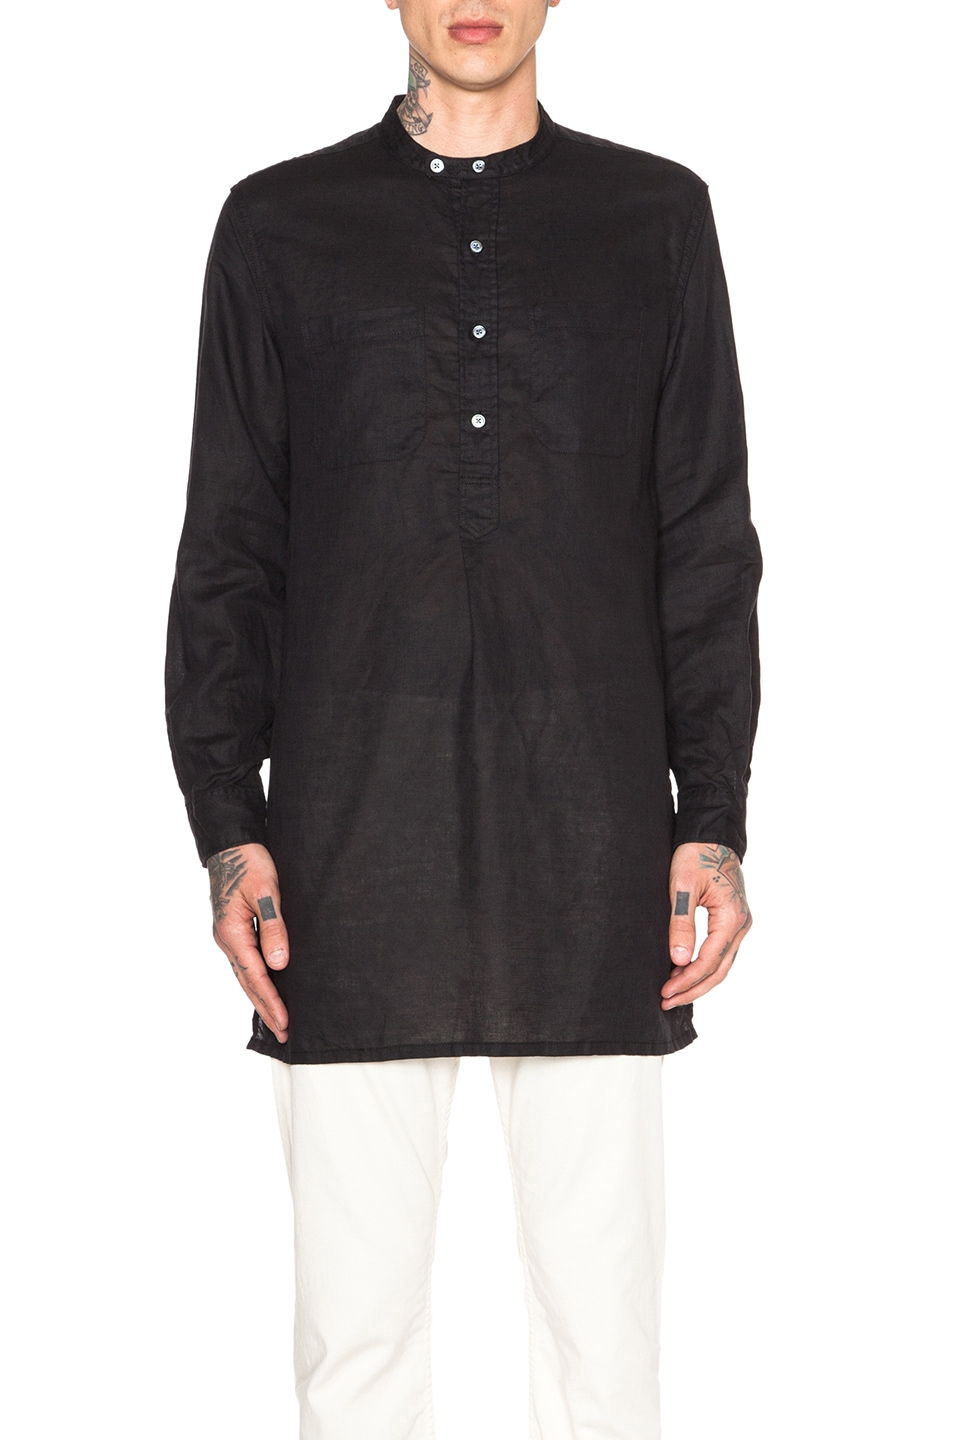 Engineered Garments Cotton Linen Banded Collar Long Shirt In Black